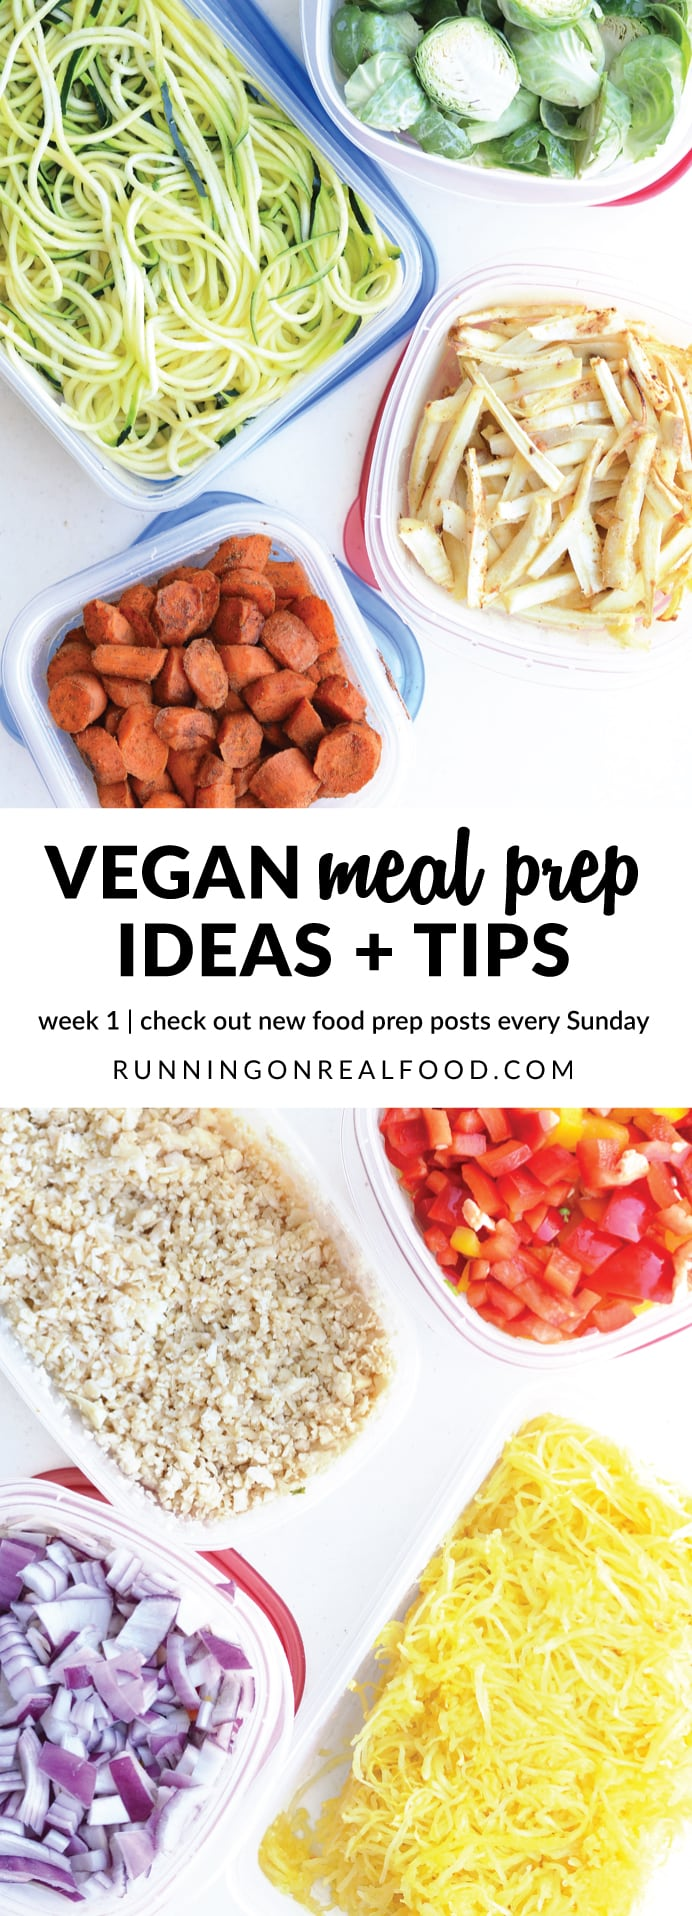 Food prep saves time, money and stress and is so important when it comes to healthy eating. Check out vegan meal prep ideas from week 1 (Week of May 29, 2017). New ideas, tips and inspiration every Sunday!